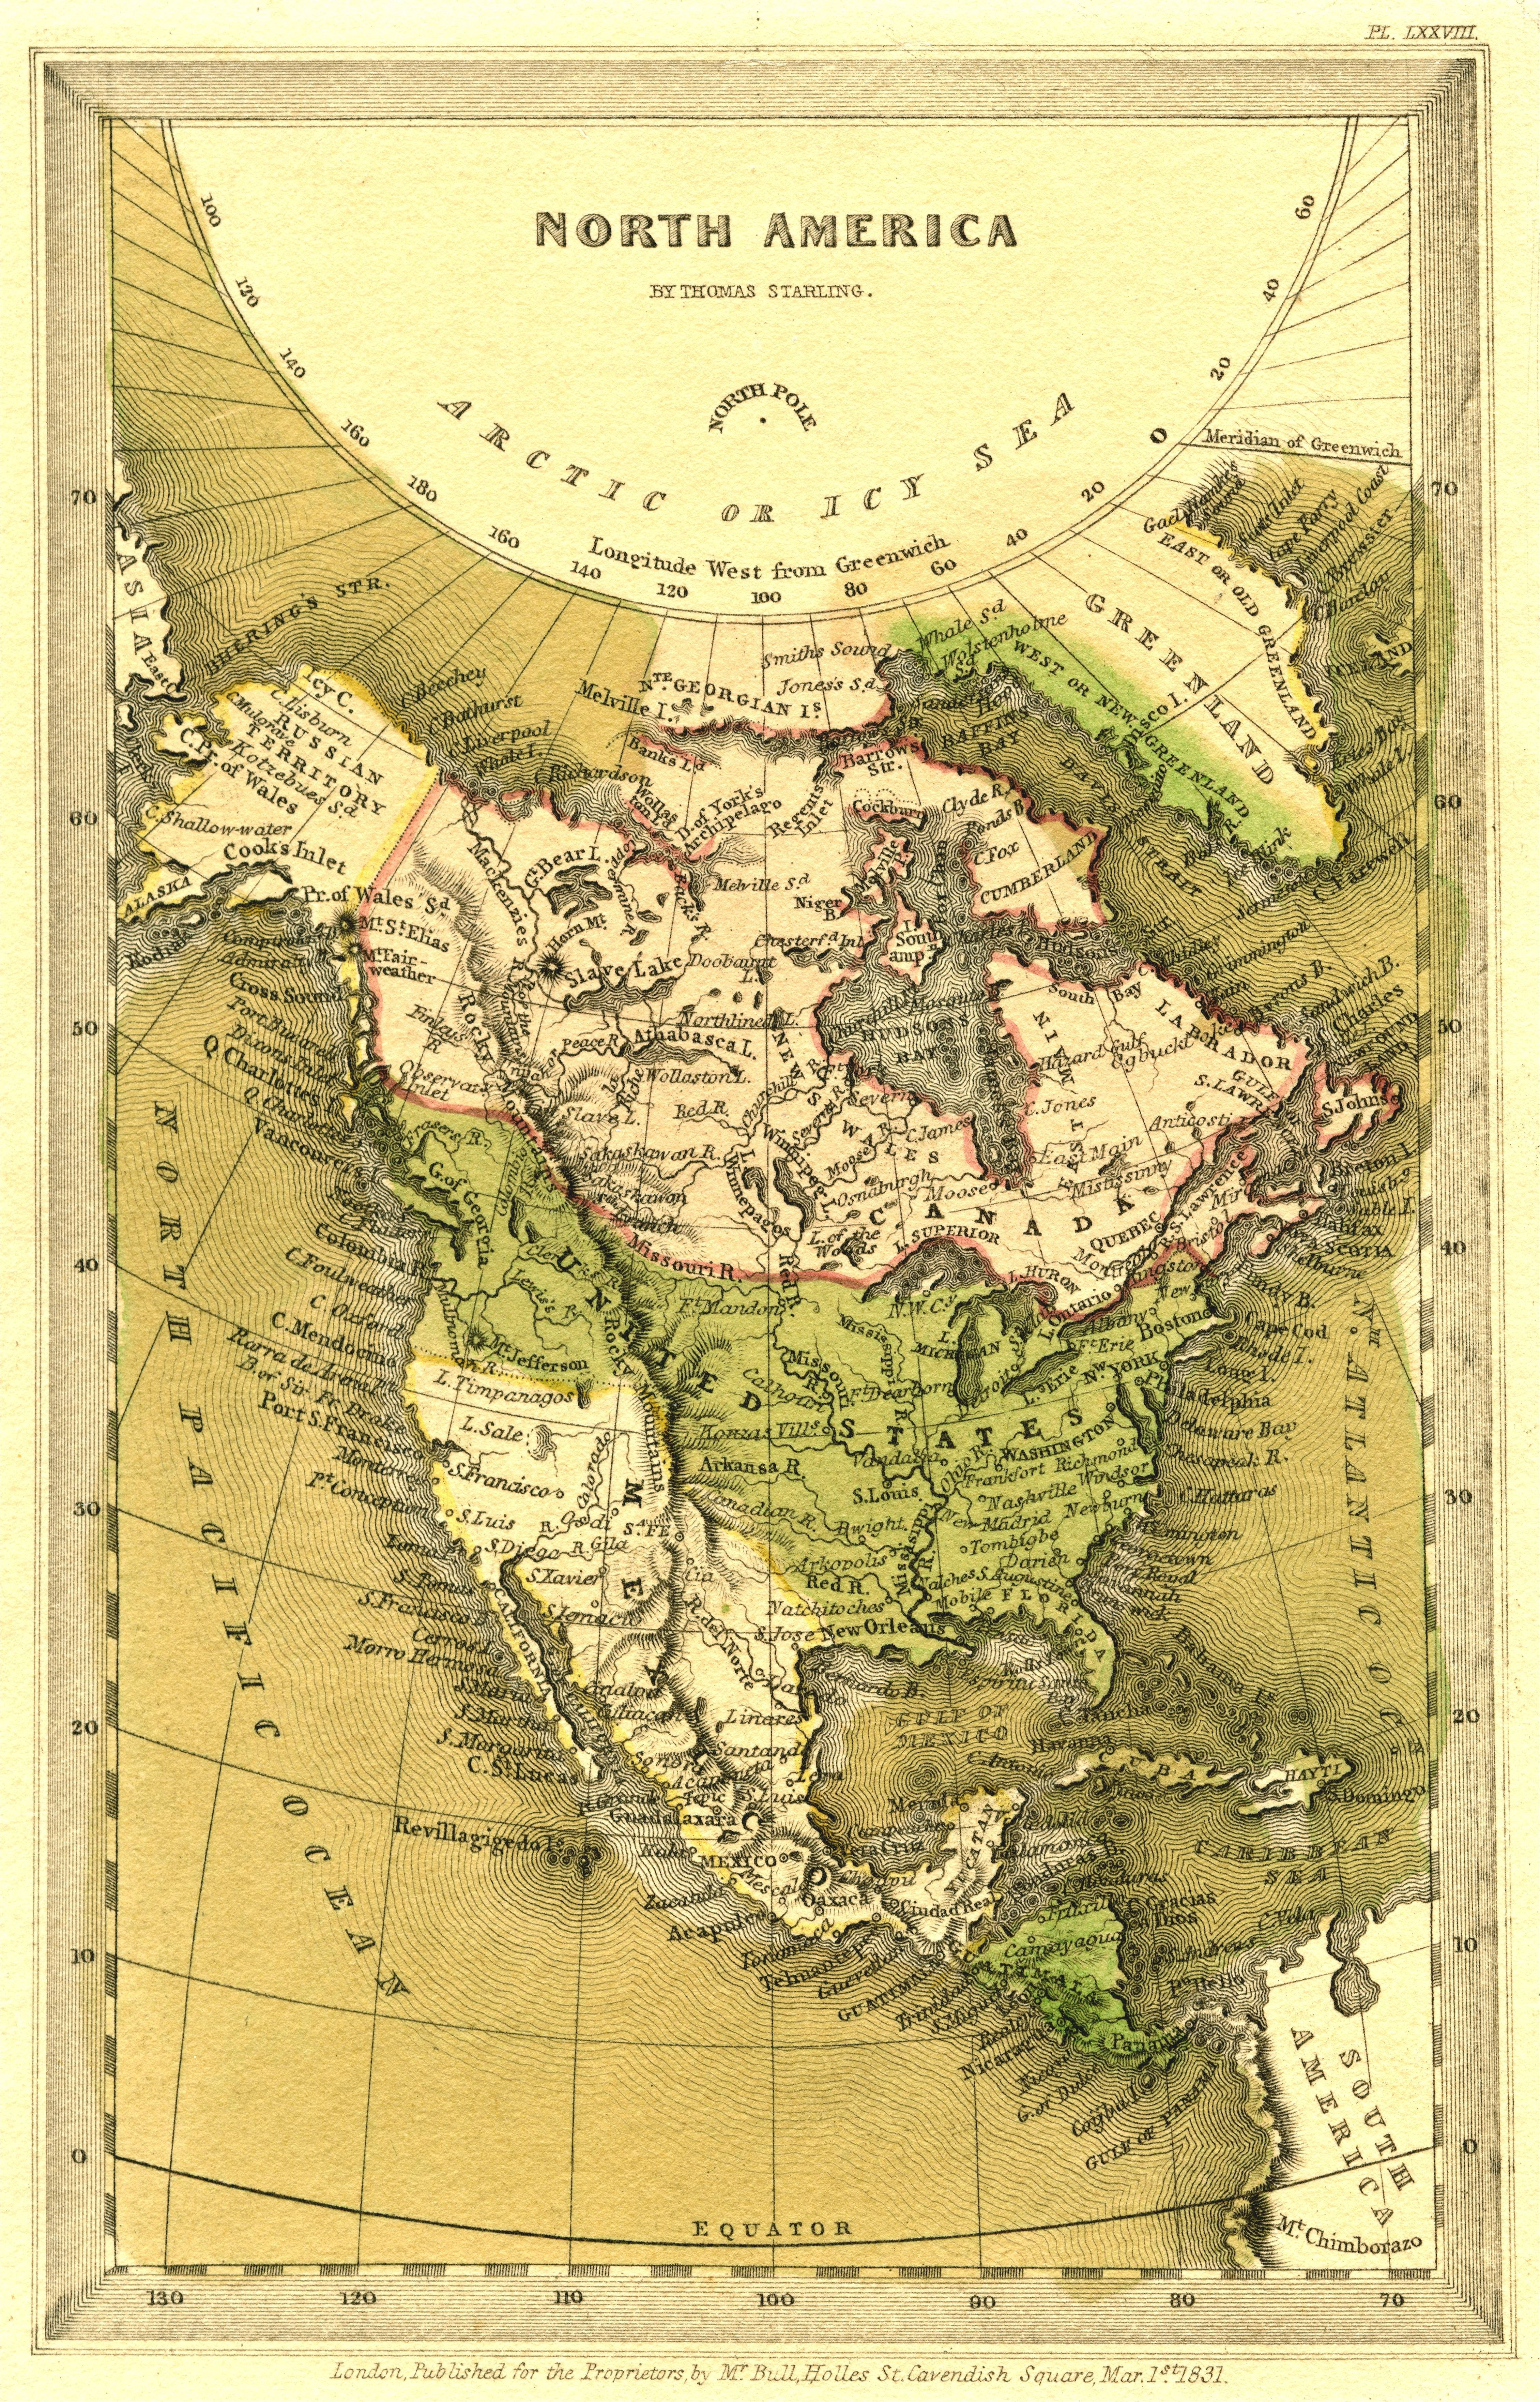 Decorative Maps Map Of North America You Have Permission To - Decorative maps for sale